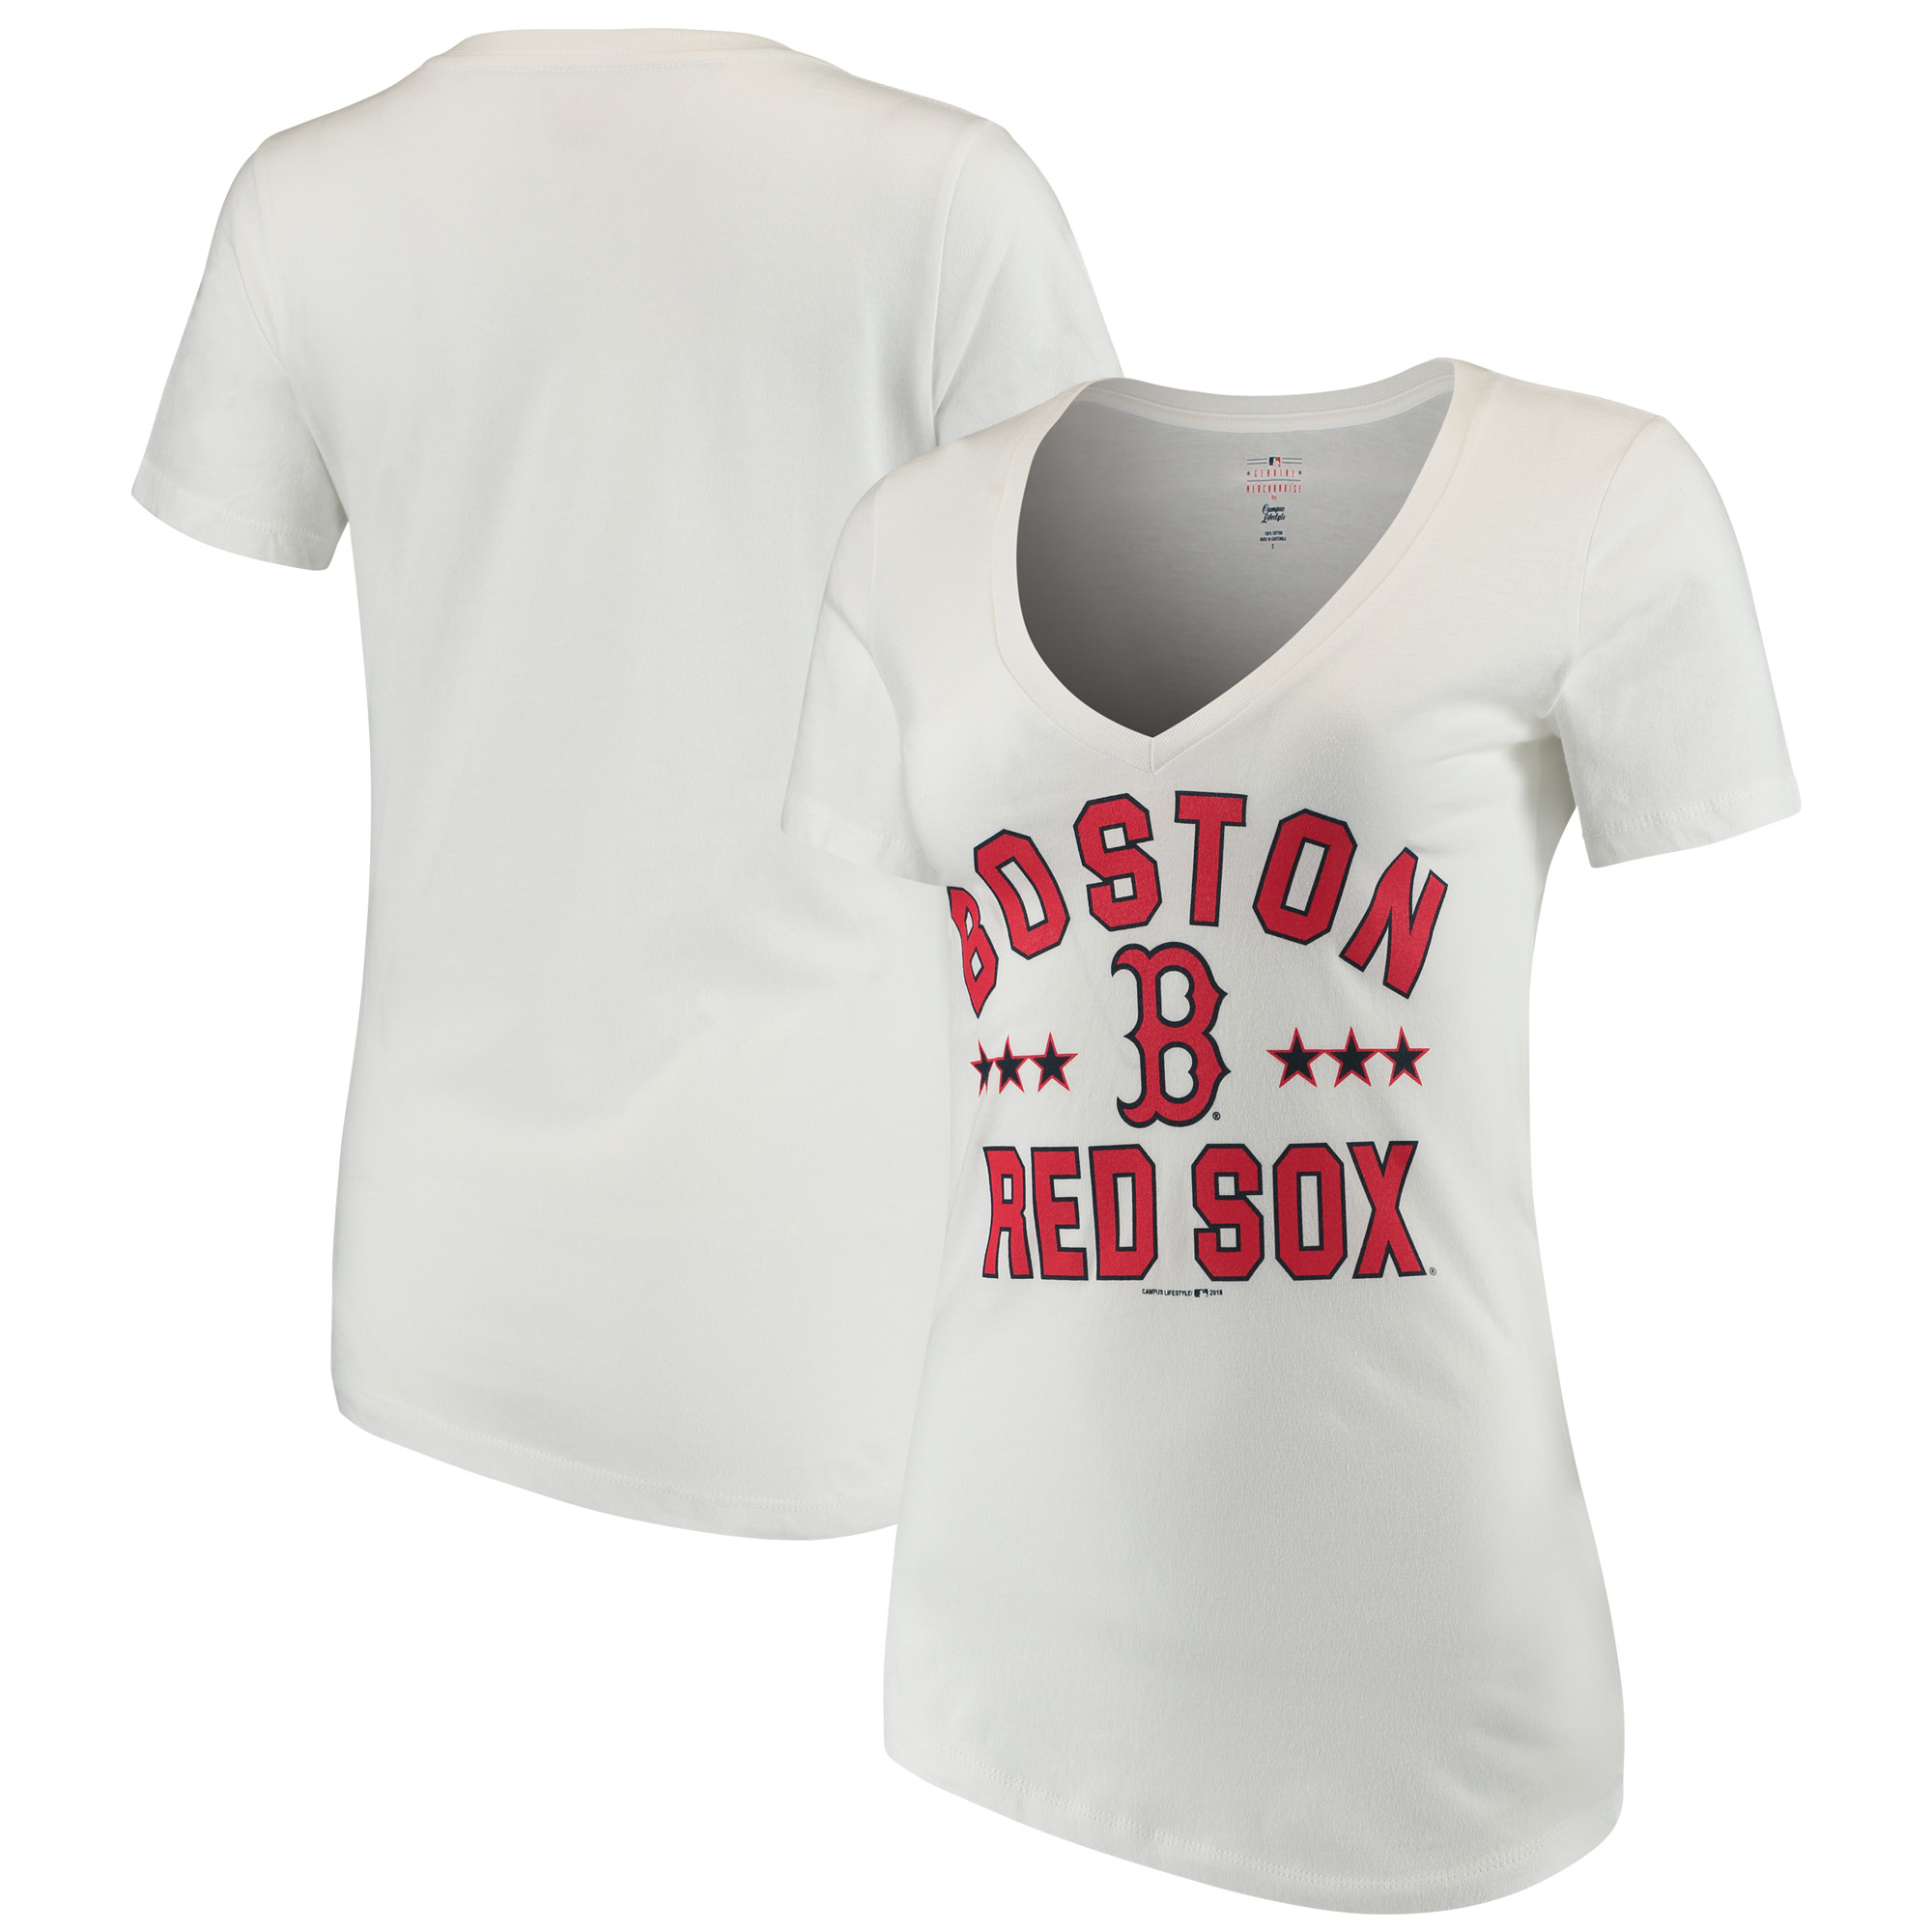 buy online 292d0 ddd08 Boston Red Sox Team Shop - Walmart.com